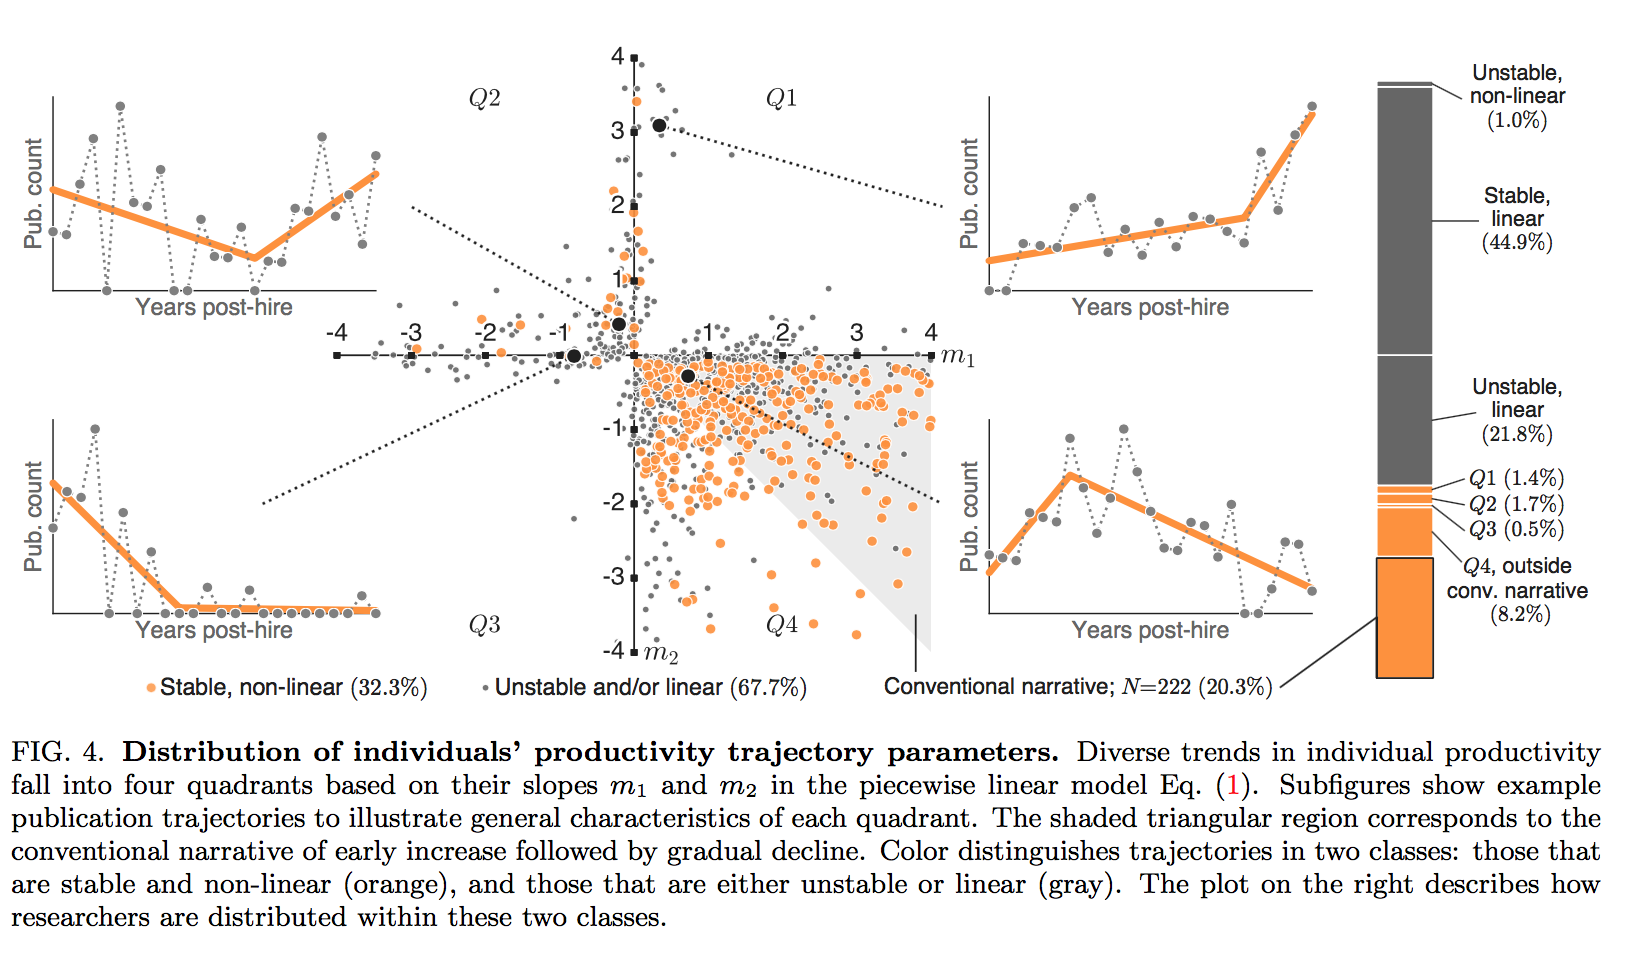 Figure 4. Distribution of individuals' productivity trajectory parameters. Diverse trends in individual productivity fall into four quadrants based on their slopes m1 and m2 in the piecewise linear model. Subfigures show example publication trajectories to illustrate general characteristics of each quadrant. The shaded triangular region corresponds to the conventional narrative of early increase followed by gradual decline. Color distinguishes trajectories in two classes: those that are stable and nonlinear (orange) and those that are either unstable or linear (gray). The plot on the right describes how researchers are distributed within these two classes.